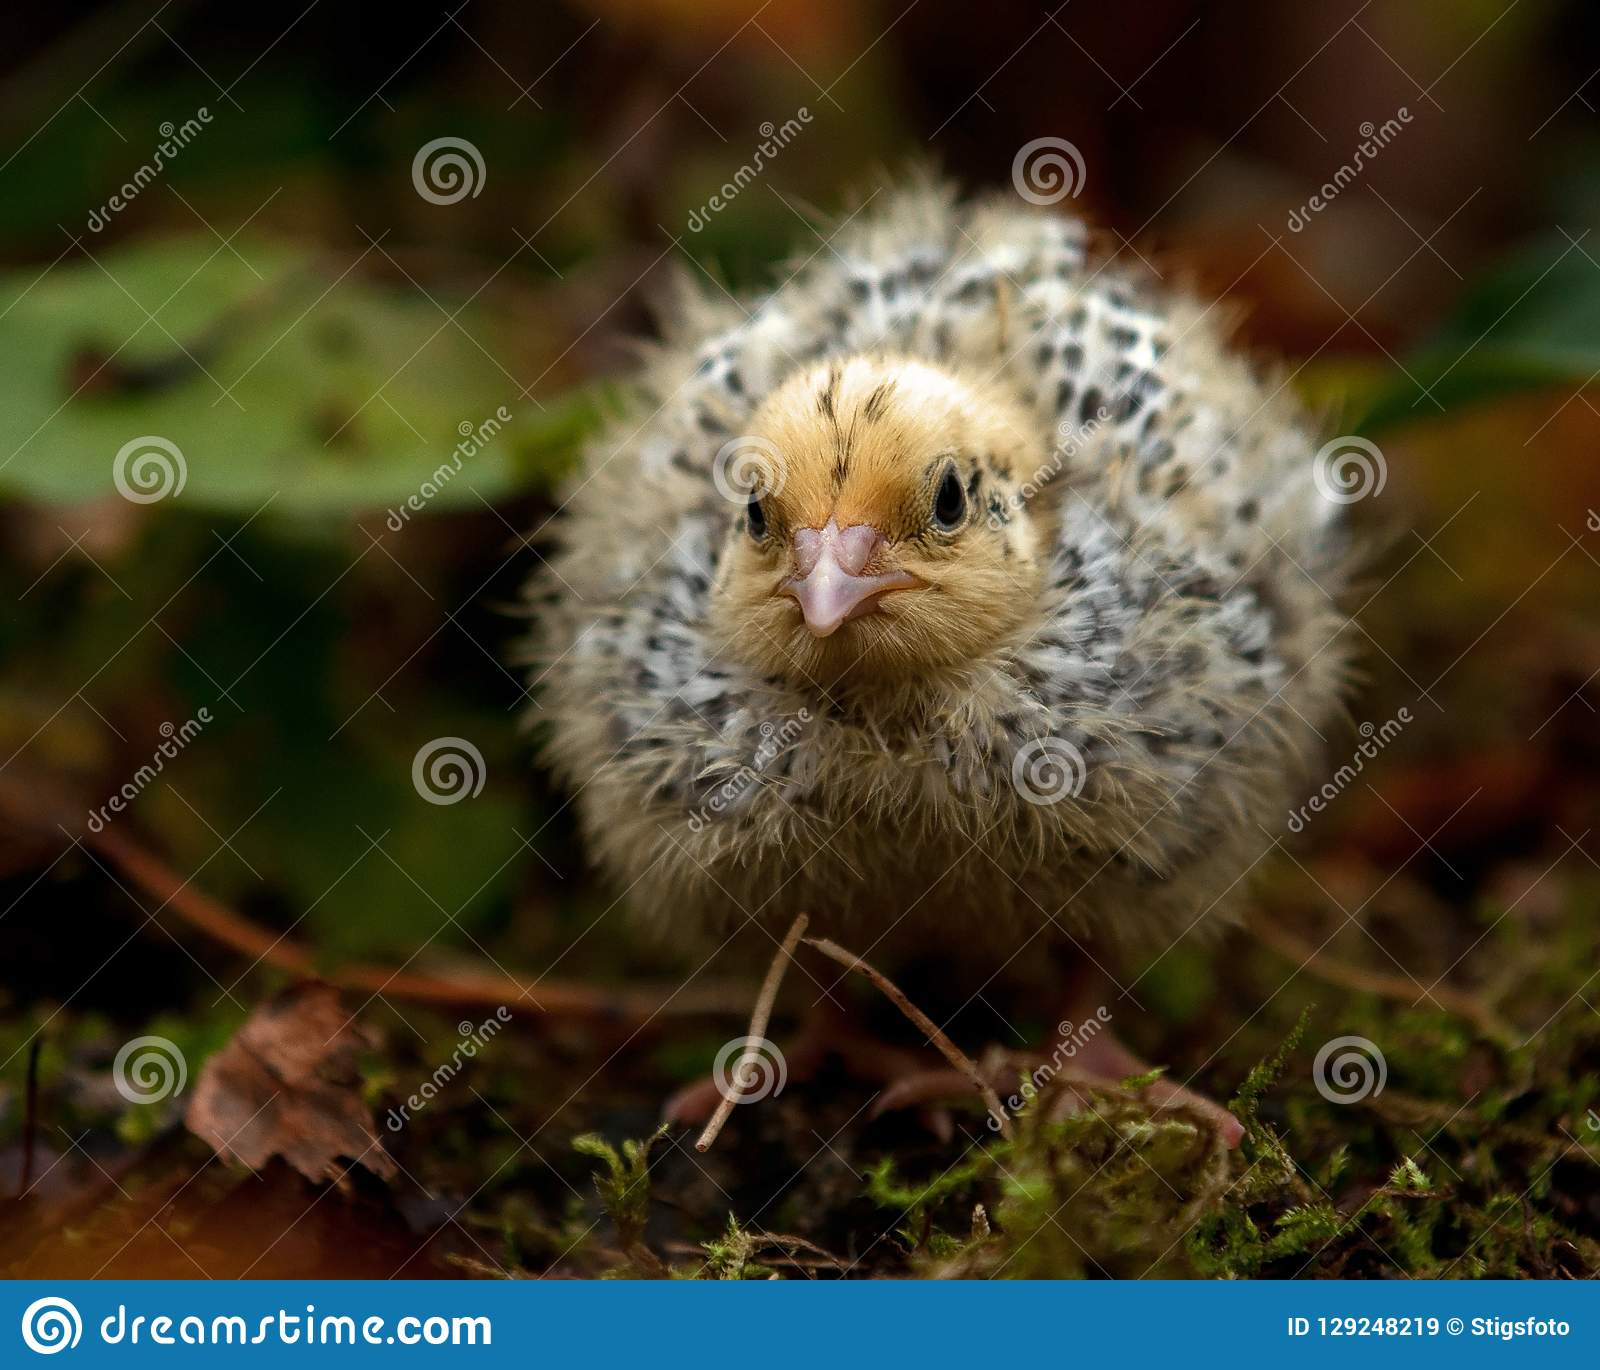 Eight days old quail, Coturnix japonica.....photographed in nature